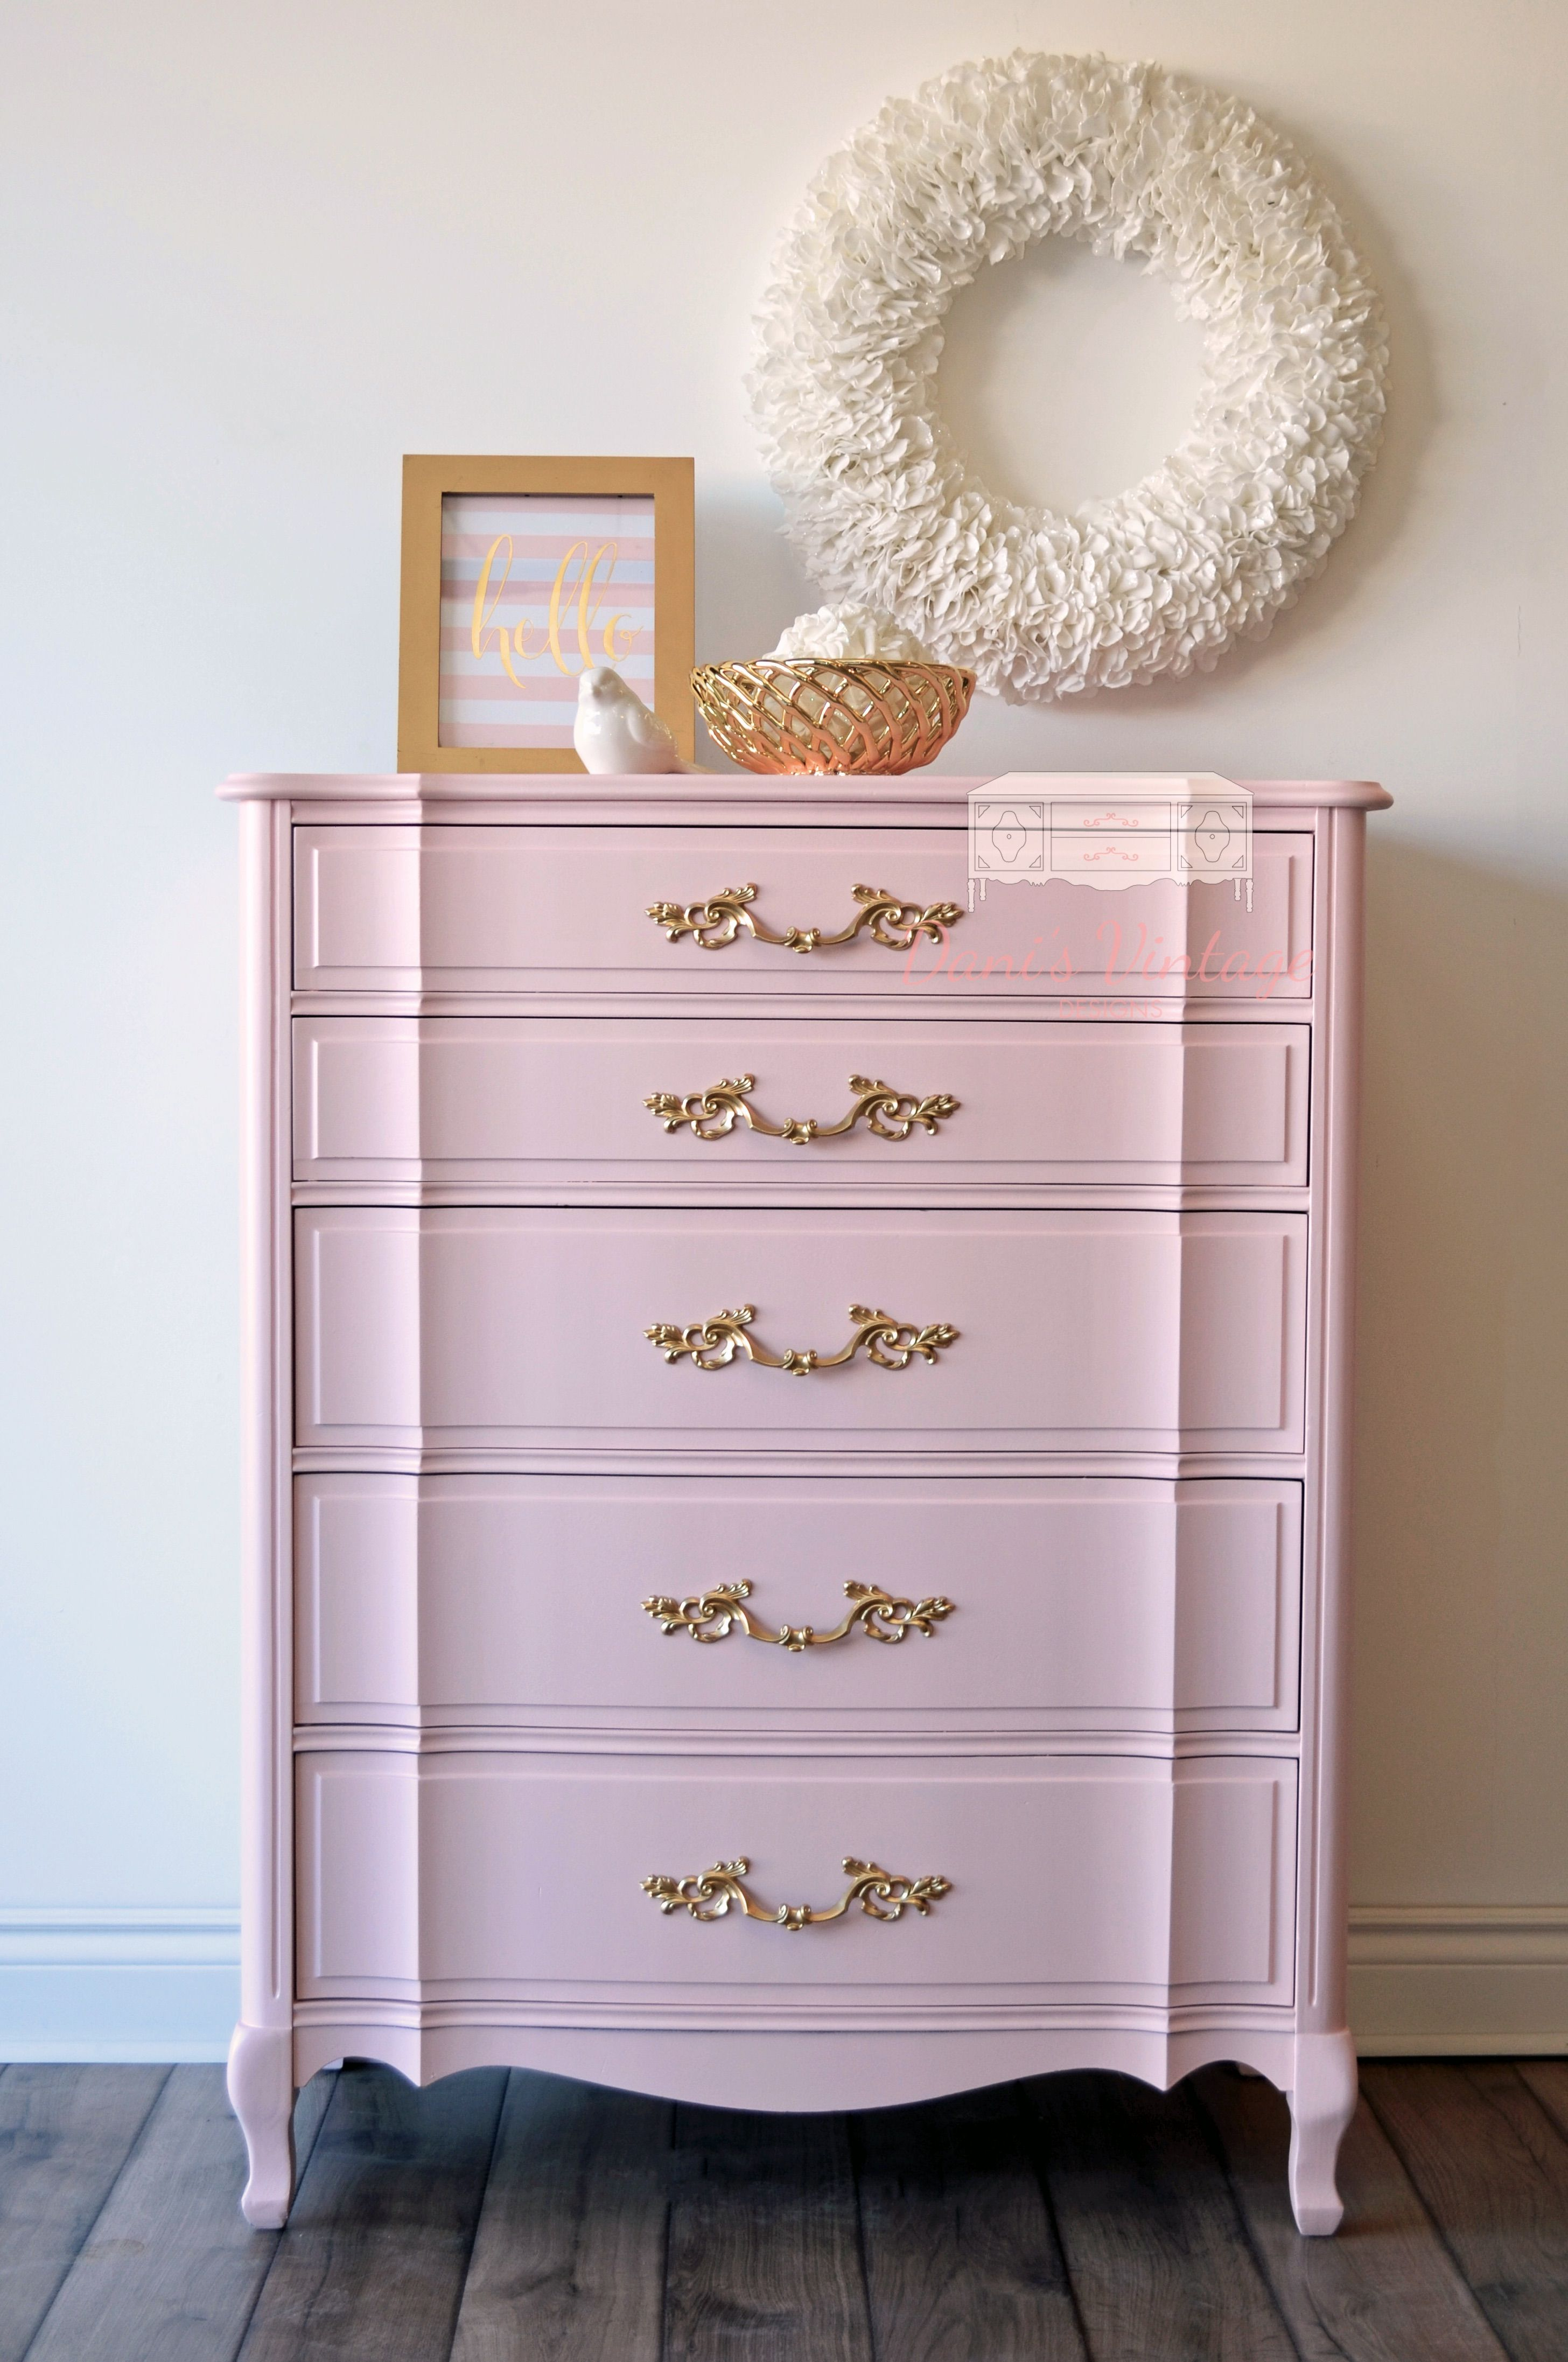 How Awesome And Y Is This Dresser Perfect In A Trendy Office To Tuck Files Pink Themed Nursery Little S Room Or Like Me